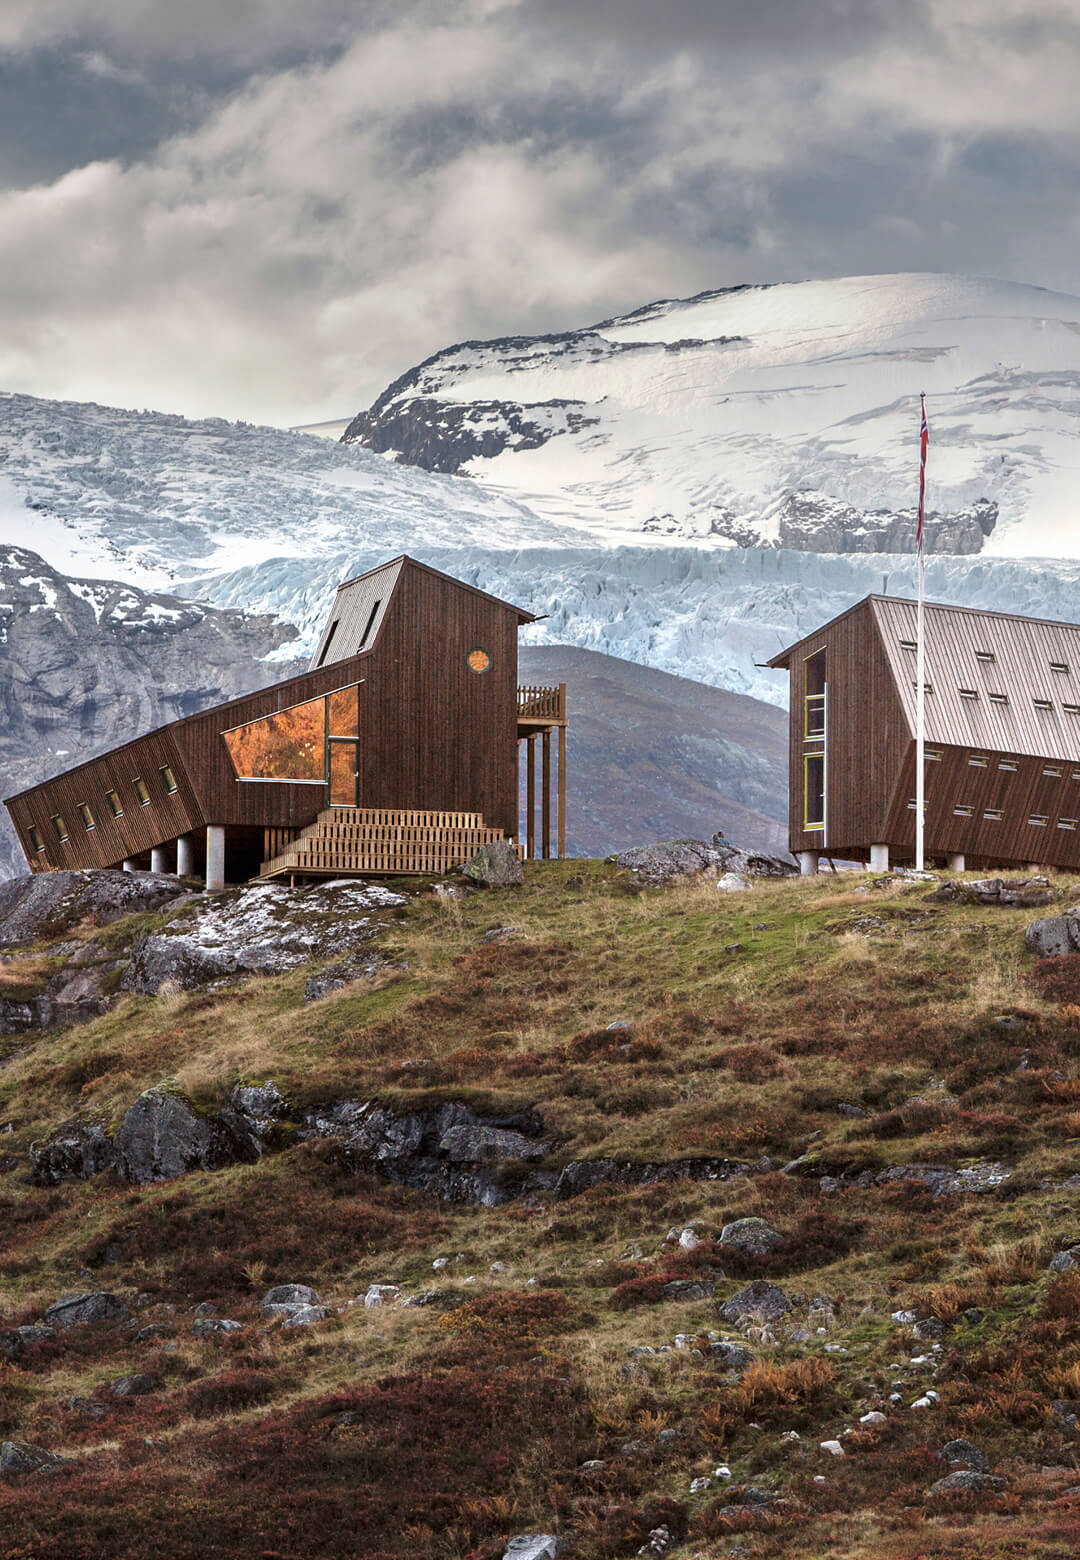 Snøhetta designs Tungestølen, a group of wooden tourist cabins alongside Jostedalsbreen Glacier in Norway | Tungestølen Hiking Cabin by Snøhetta | STIRworld